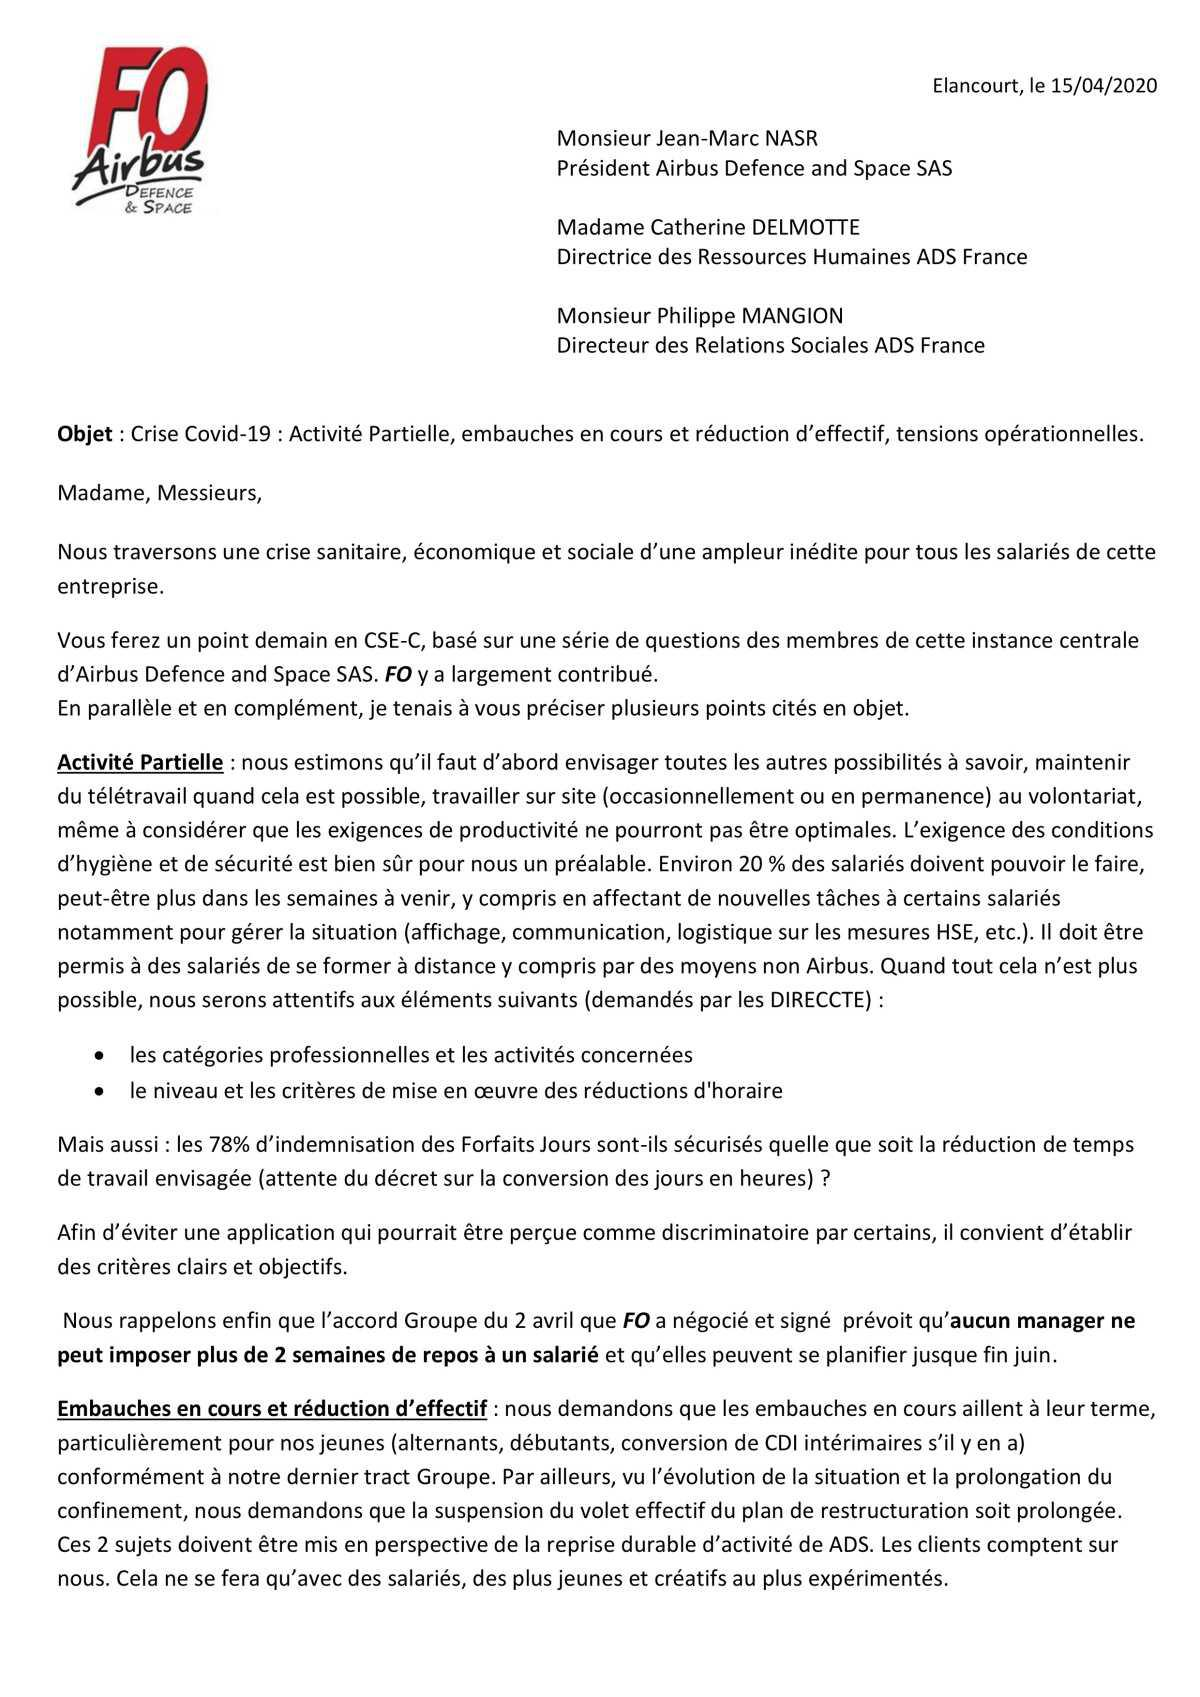 Courrier à la Direction d'Airbus DS France